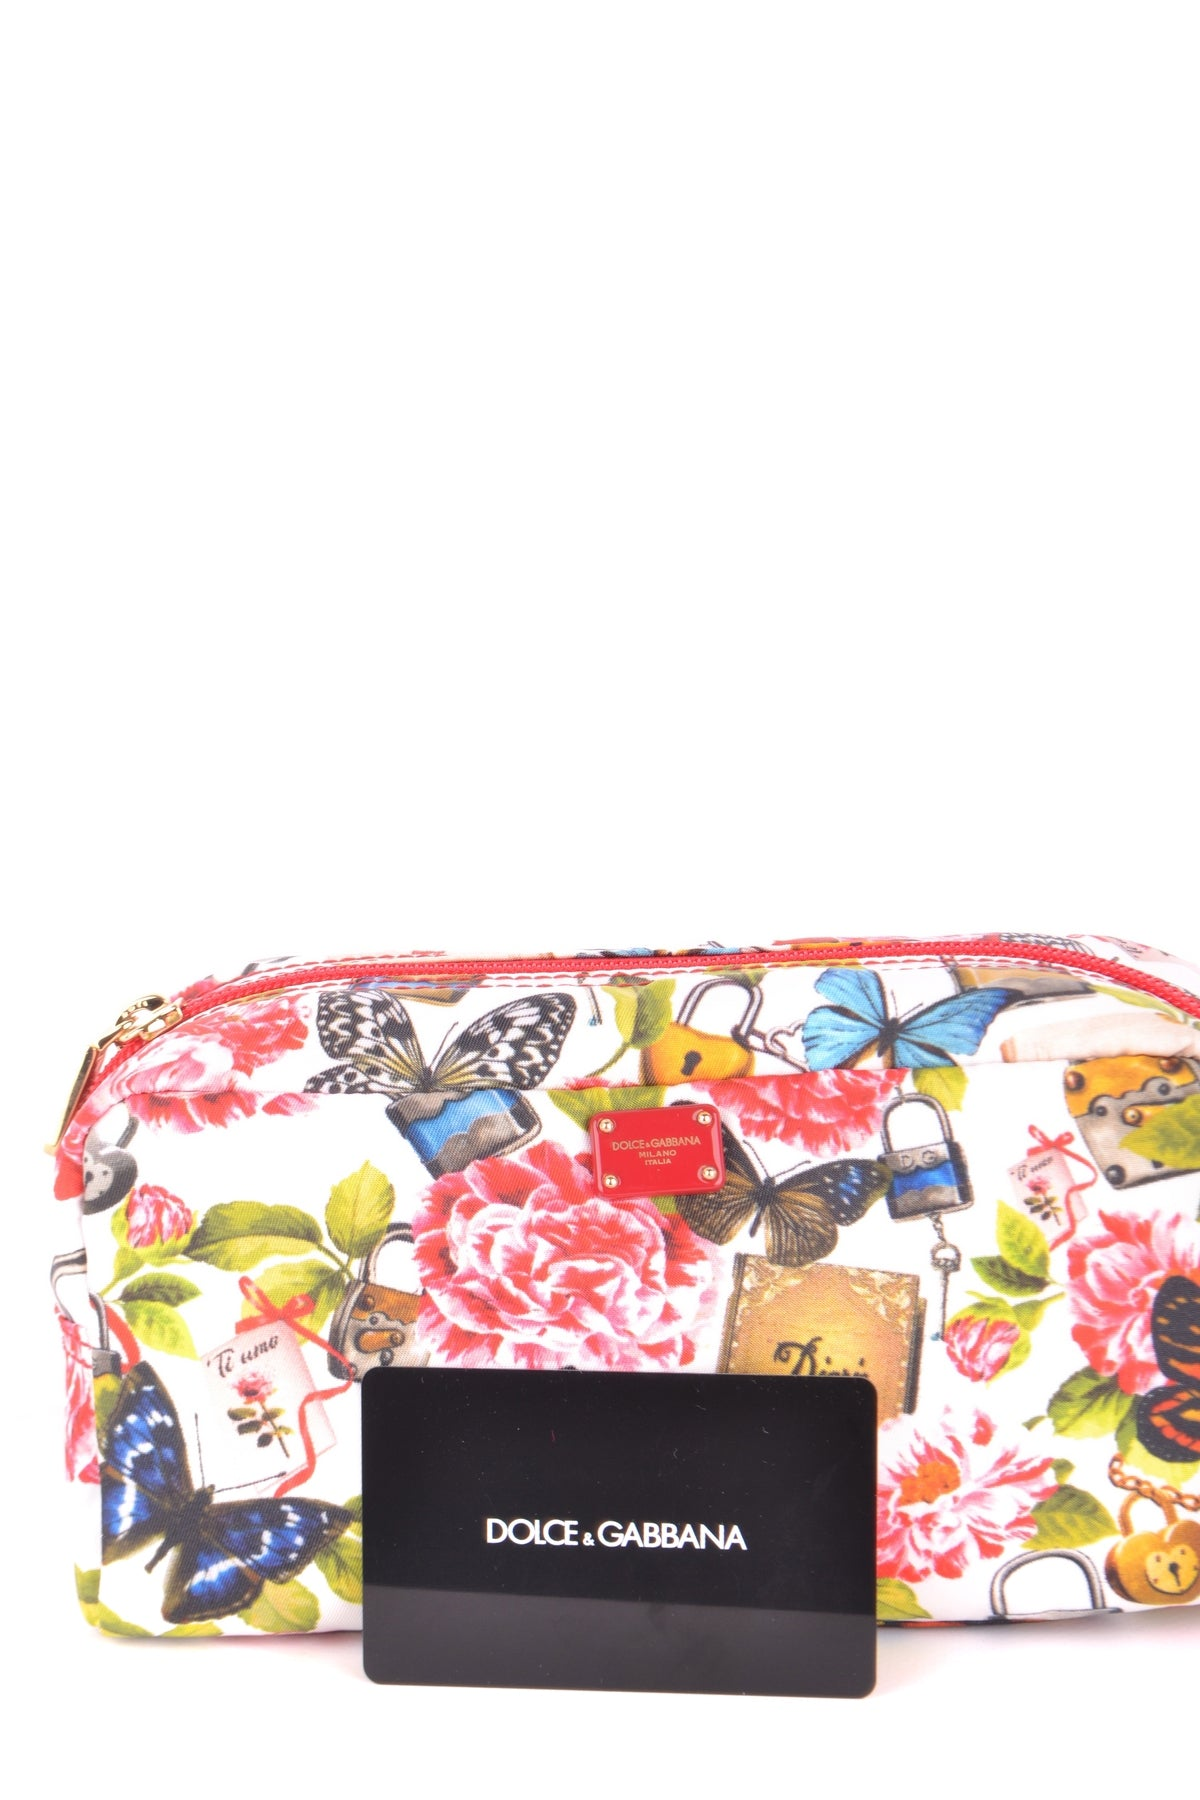 Bag Dolce & Gabbana-Bags - WOMAN-Product Details Type Of Accessory: Beauty CaseSeason: Spring / SummerMade In: ItalyTerms: New With LabelMain Color: MulticolorGender: WomanYear: 2018Manufacturer Part Number: Bi0932 0116 0933192962937012Size: IntBag Wxhxd (Cm): 20X11X8Composition: Polyamide 100%-Keyomi-Sook